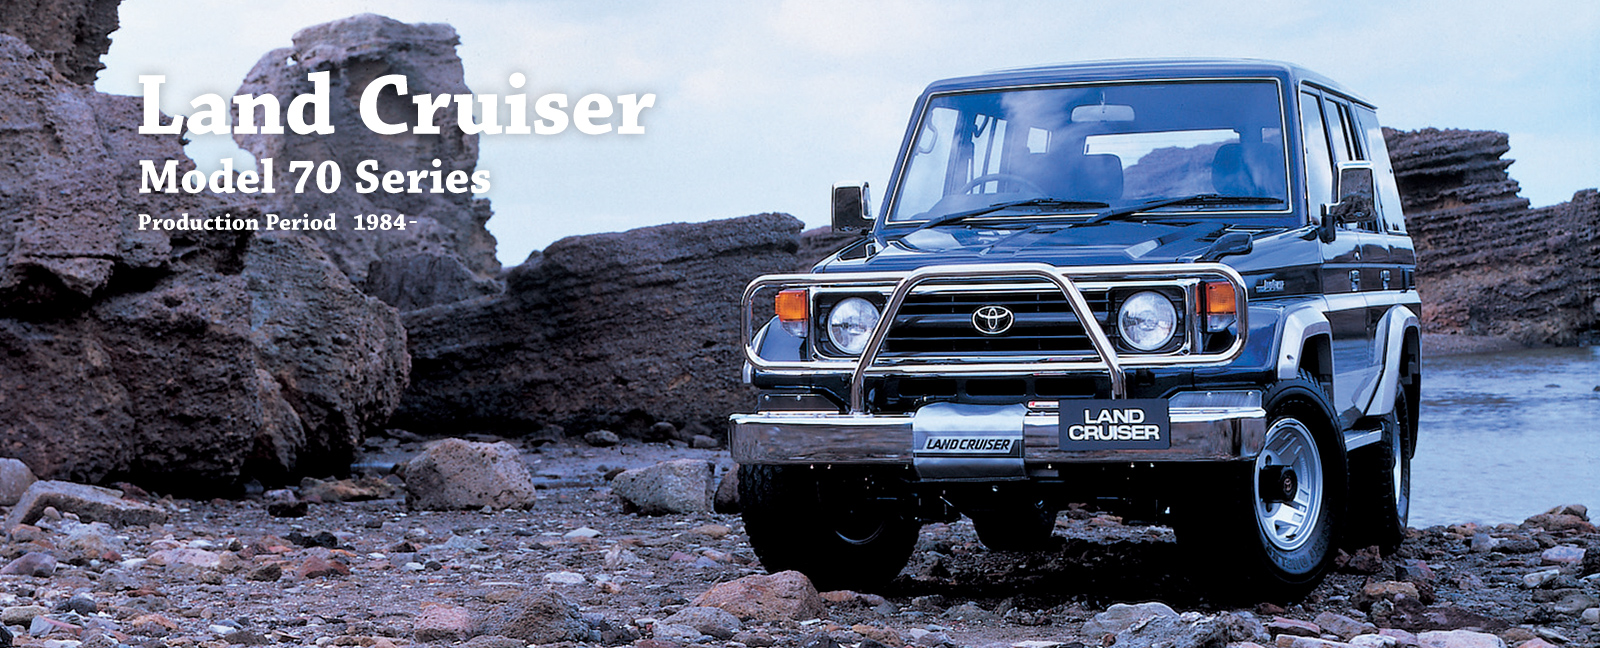 Toyota Land Cruiser Hd Wallpaper Toyota Global Site Land Cruiser Model 70 Series 01